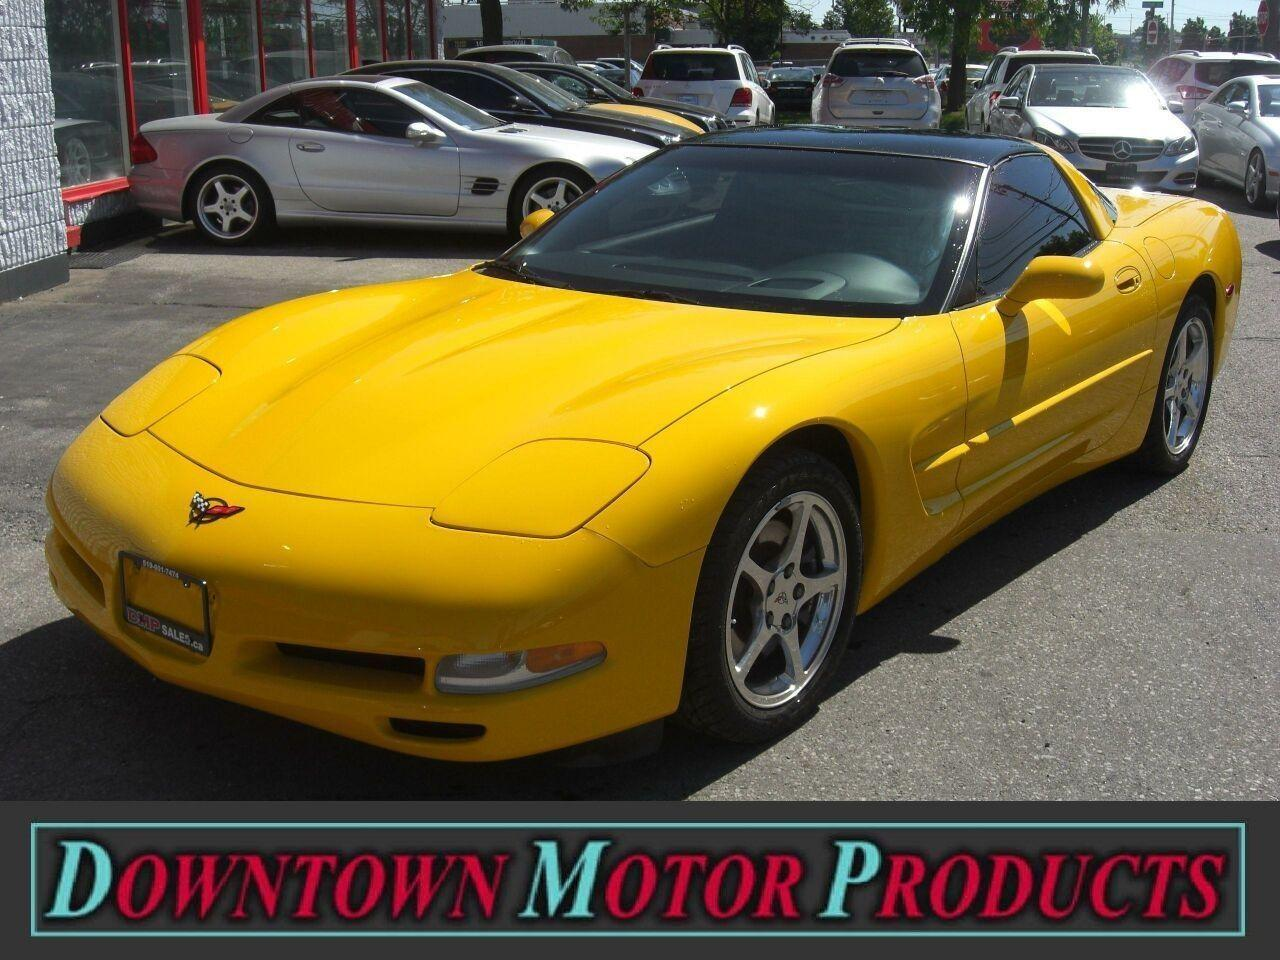 used 2001 chevrolet corvette for sale in london, ontario carpages.ca